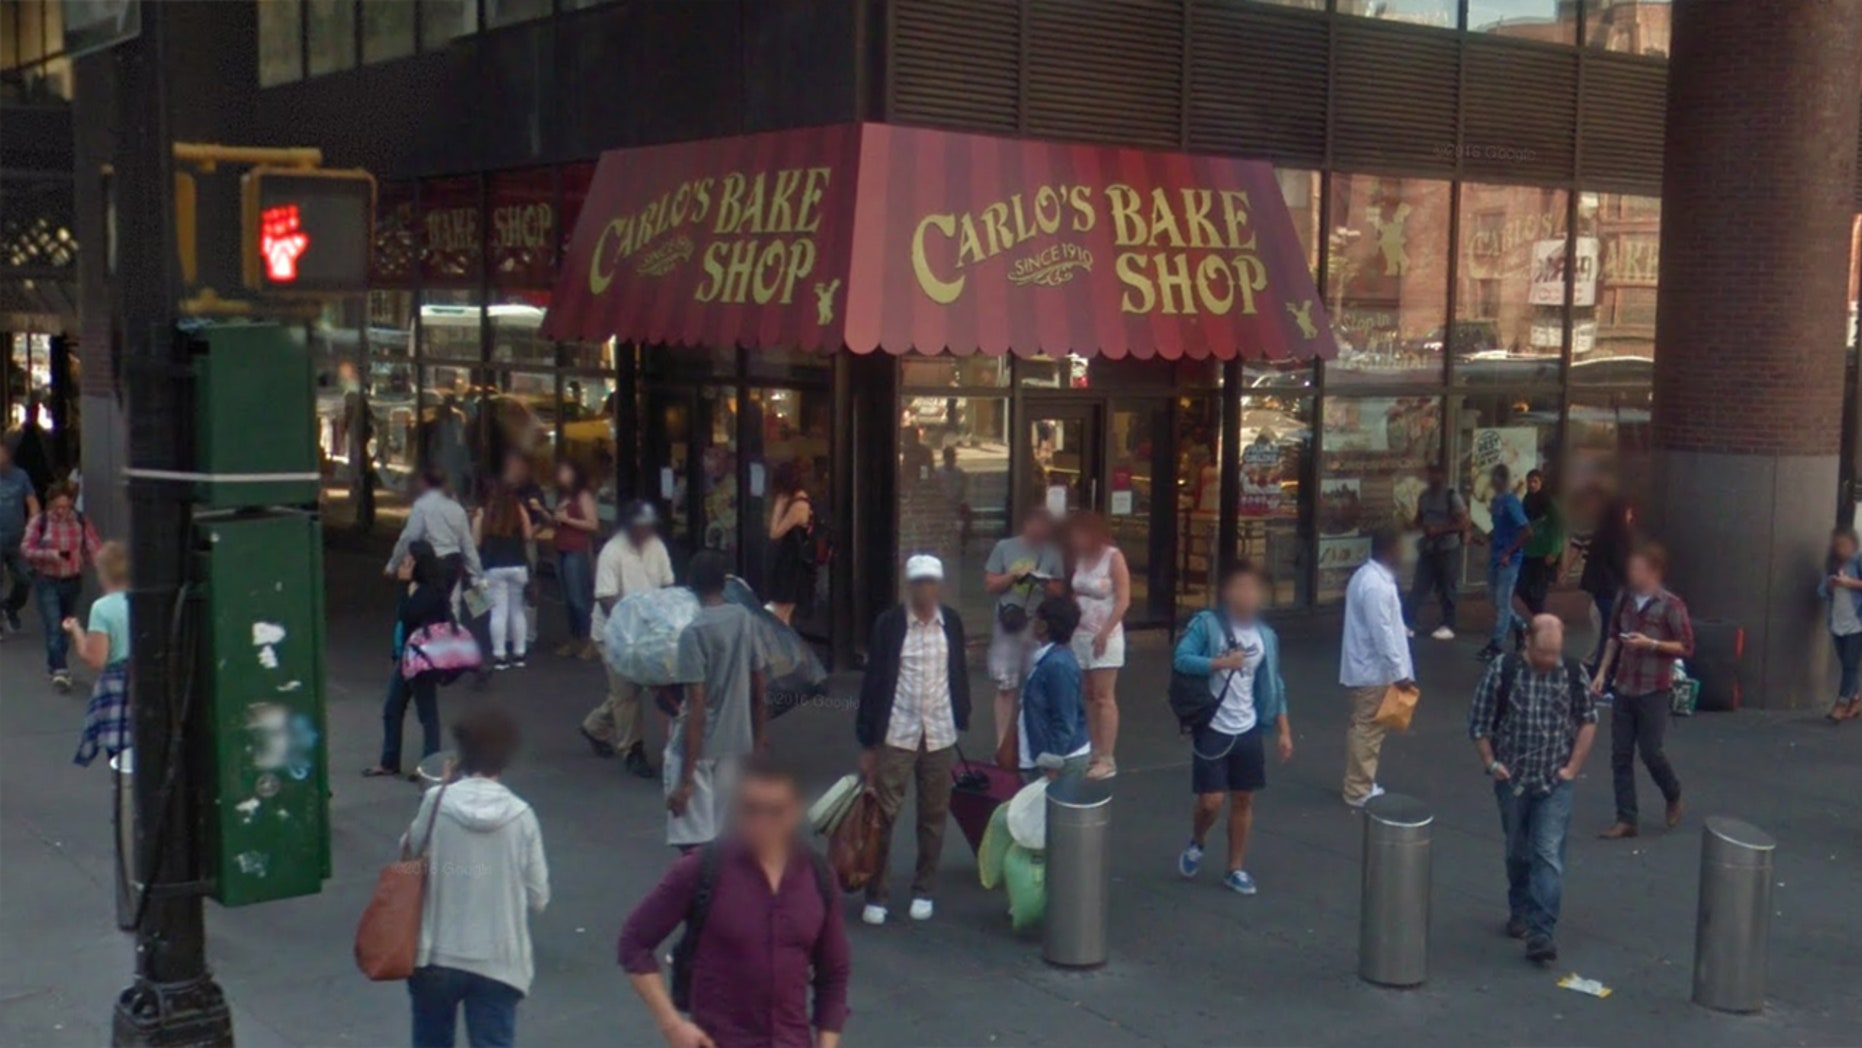 Cake Boss' Buddy Valastro confirms NYC bakery will be closed